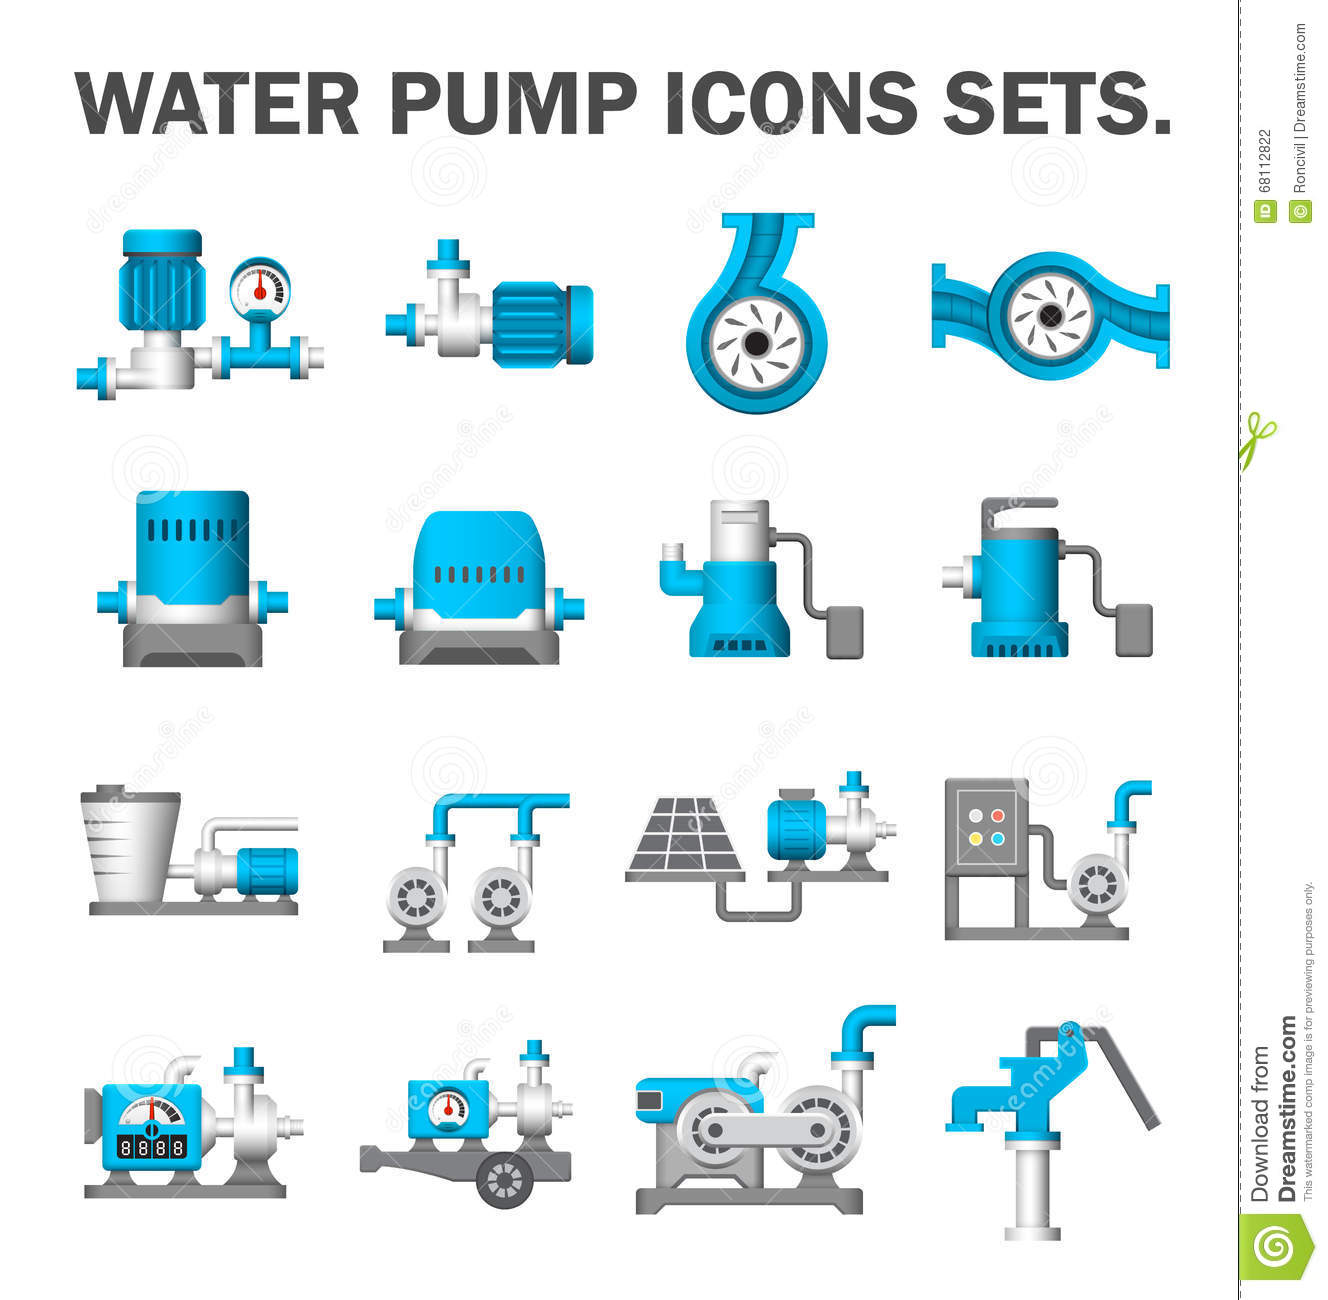 Water Pump Set Stock Vector Illustration Of Rotary Icon